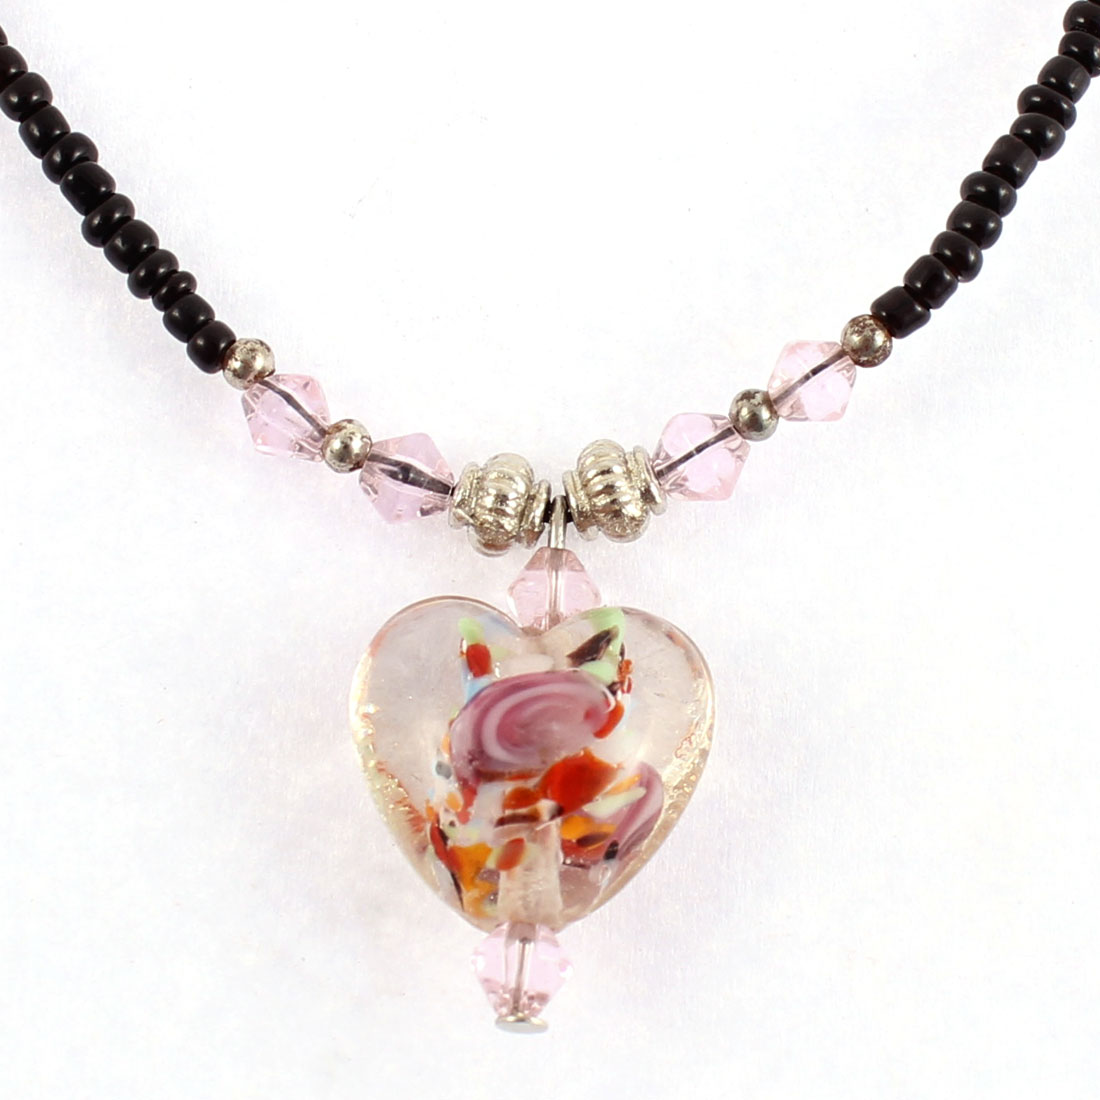 Lady Heart Shaped Bead Pendant Beaded String Chain Necklace Light Pink Black